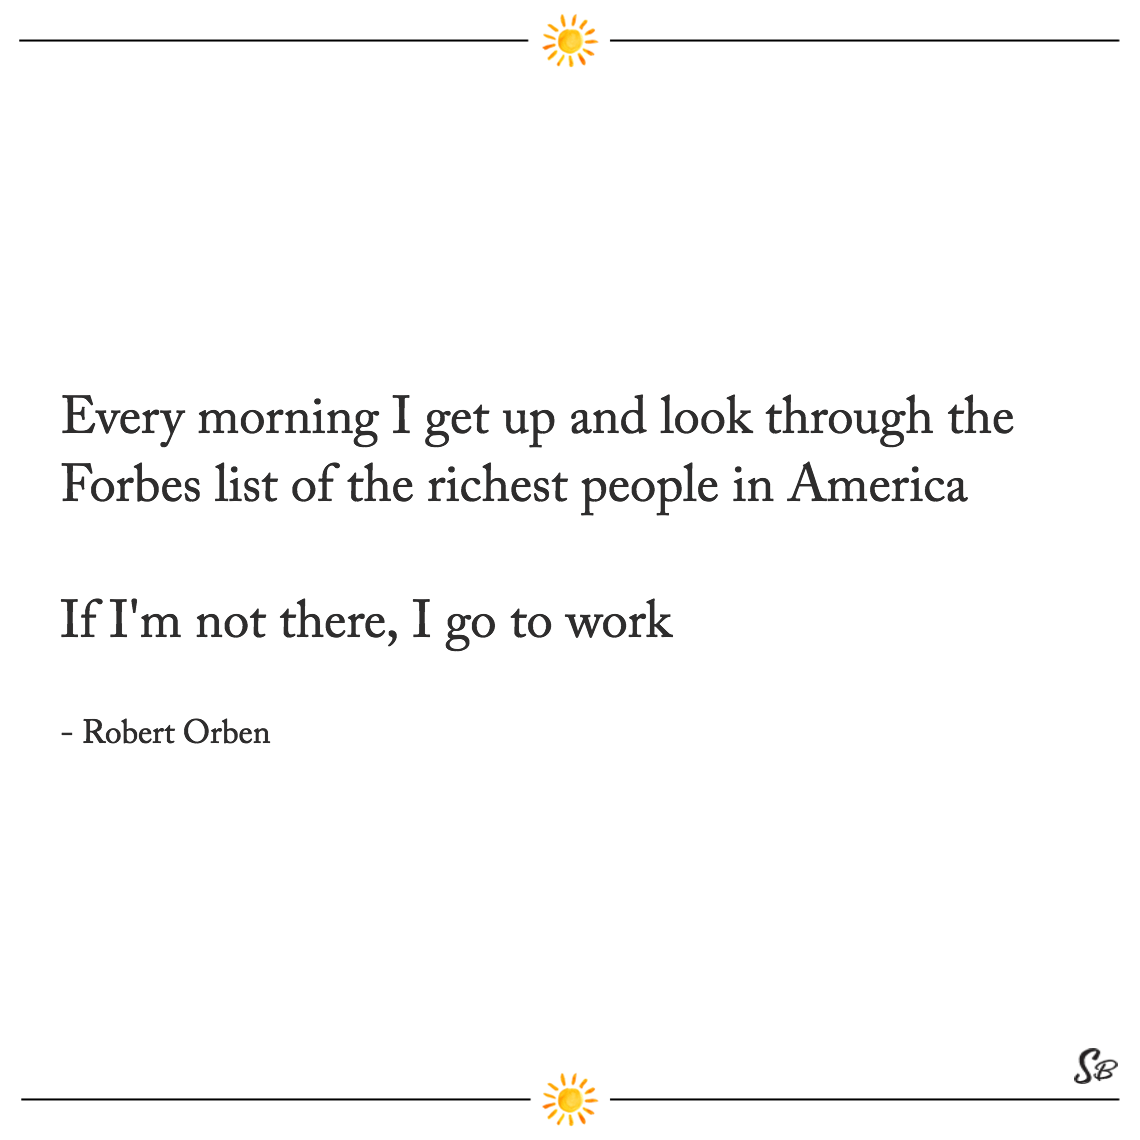 Every morning i get up and look through the forbes list of the richest people in america if i'm not there, i go to work robert orben